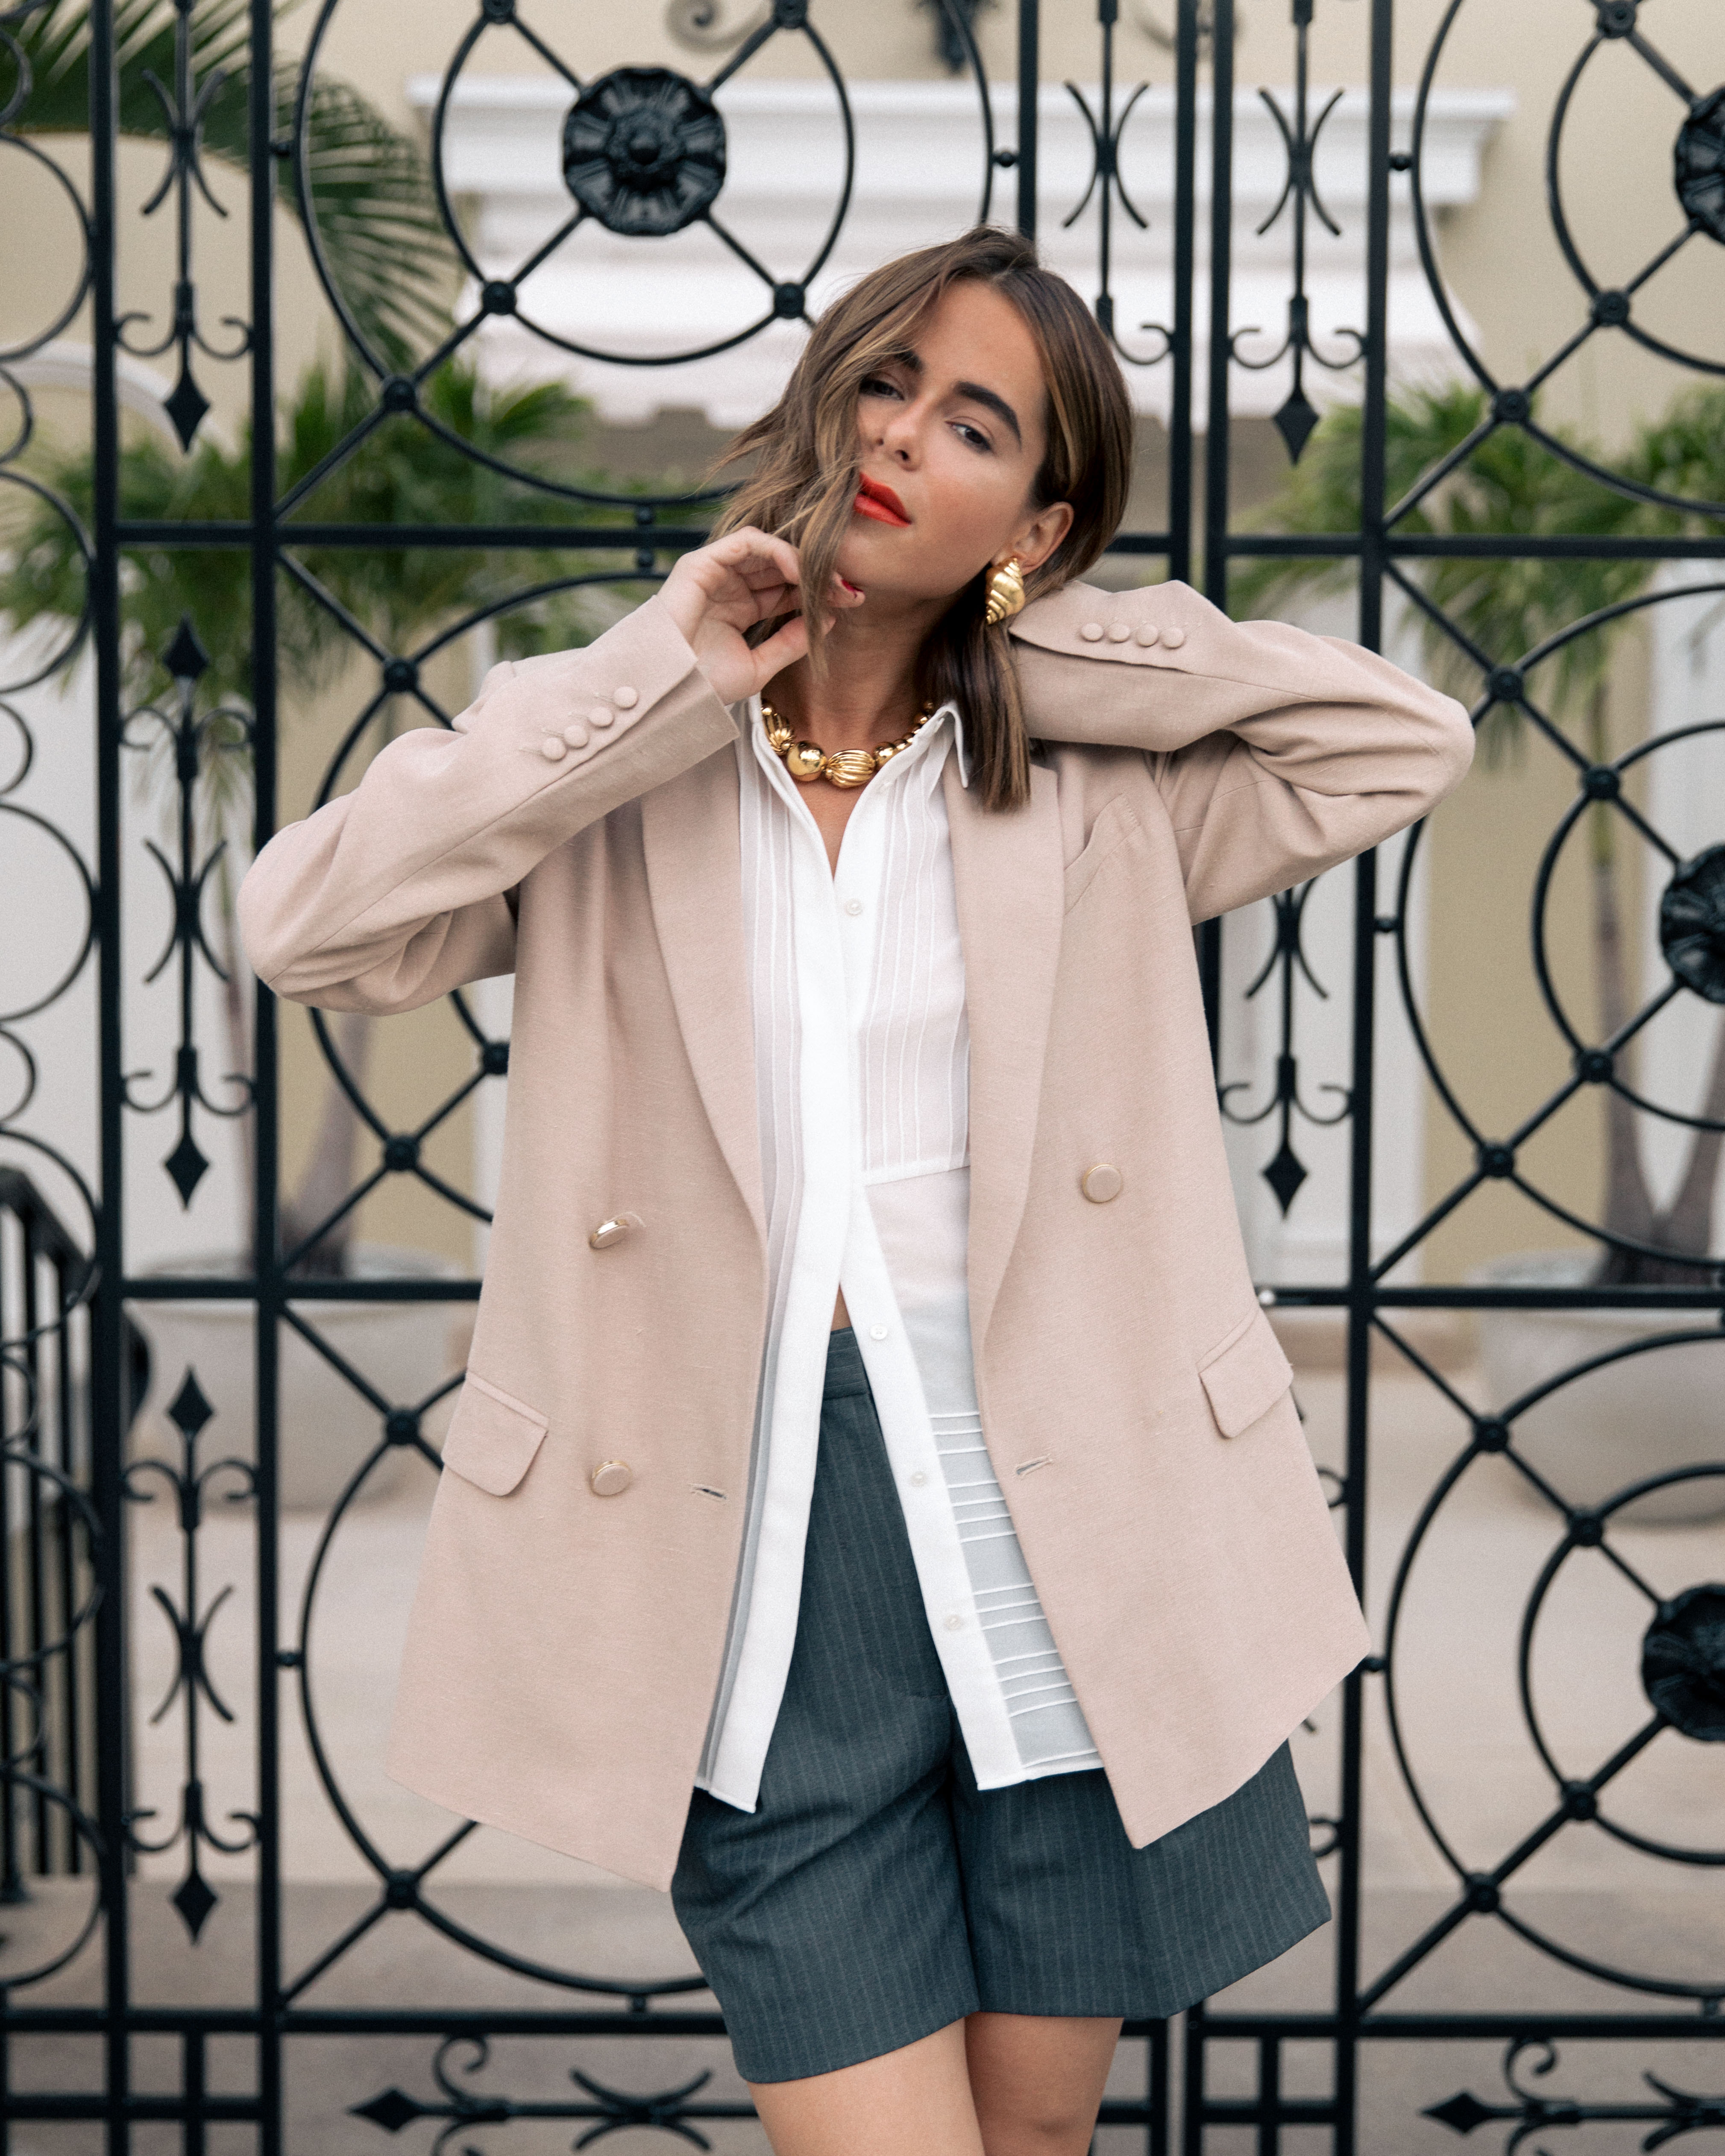 Style Blogger Stephanie Hill from The Style Bungalow wears ootd featuring Sezane blouse and blazer